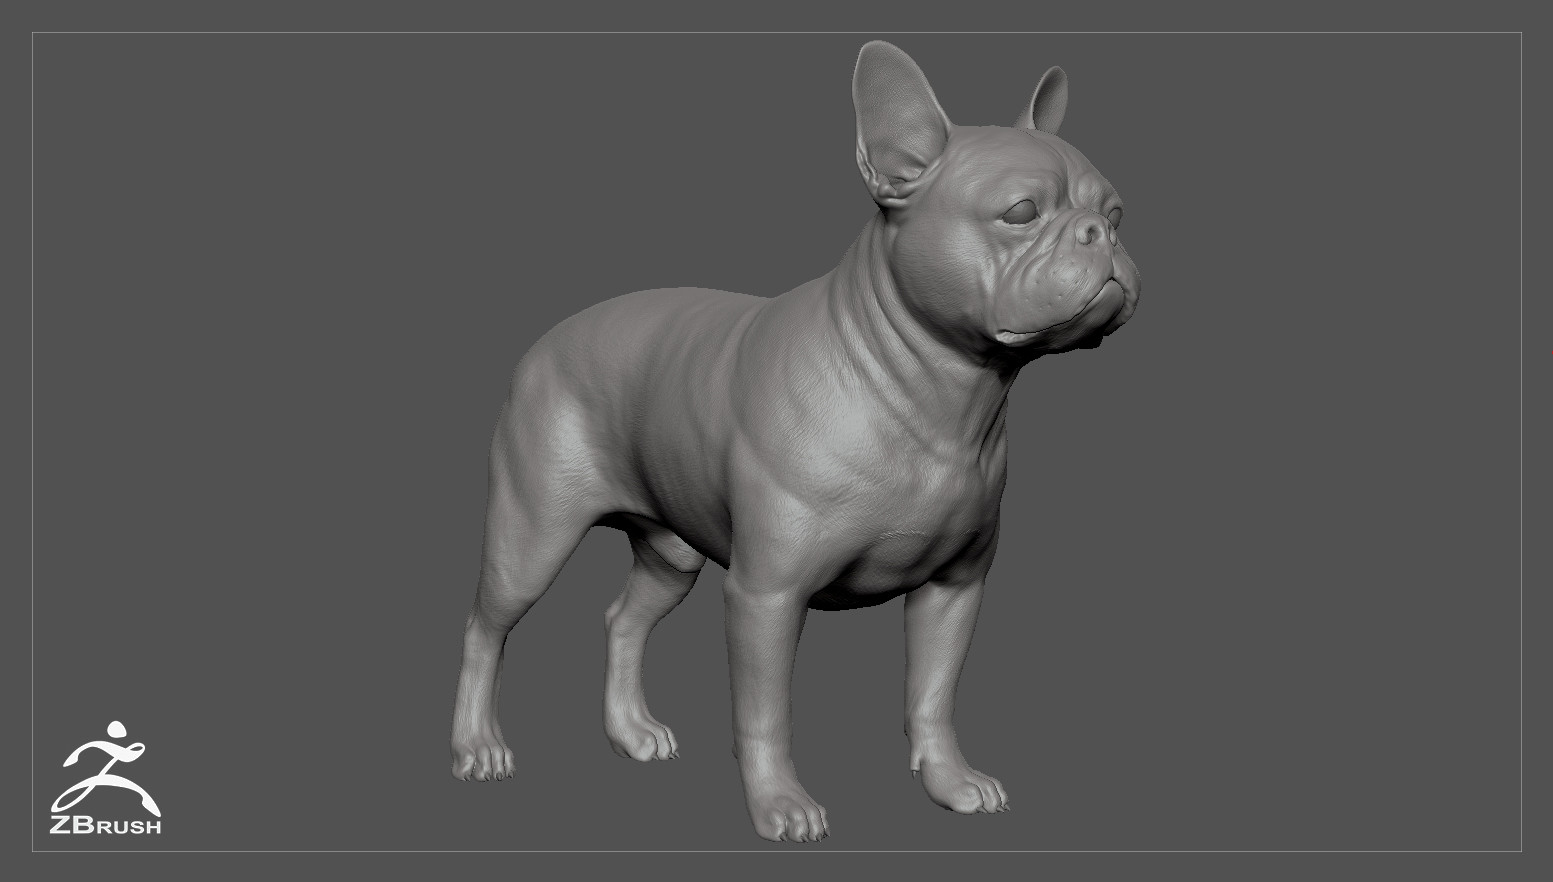 Alex lashko frenchbulldog by alexlashko zbrush 01